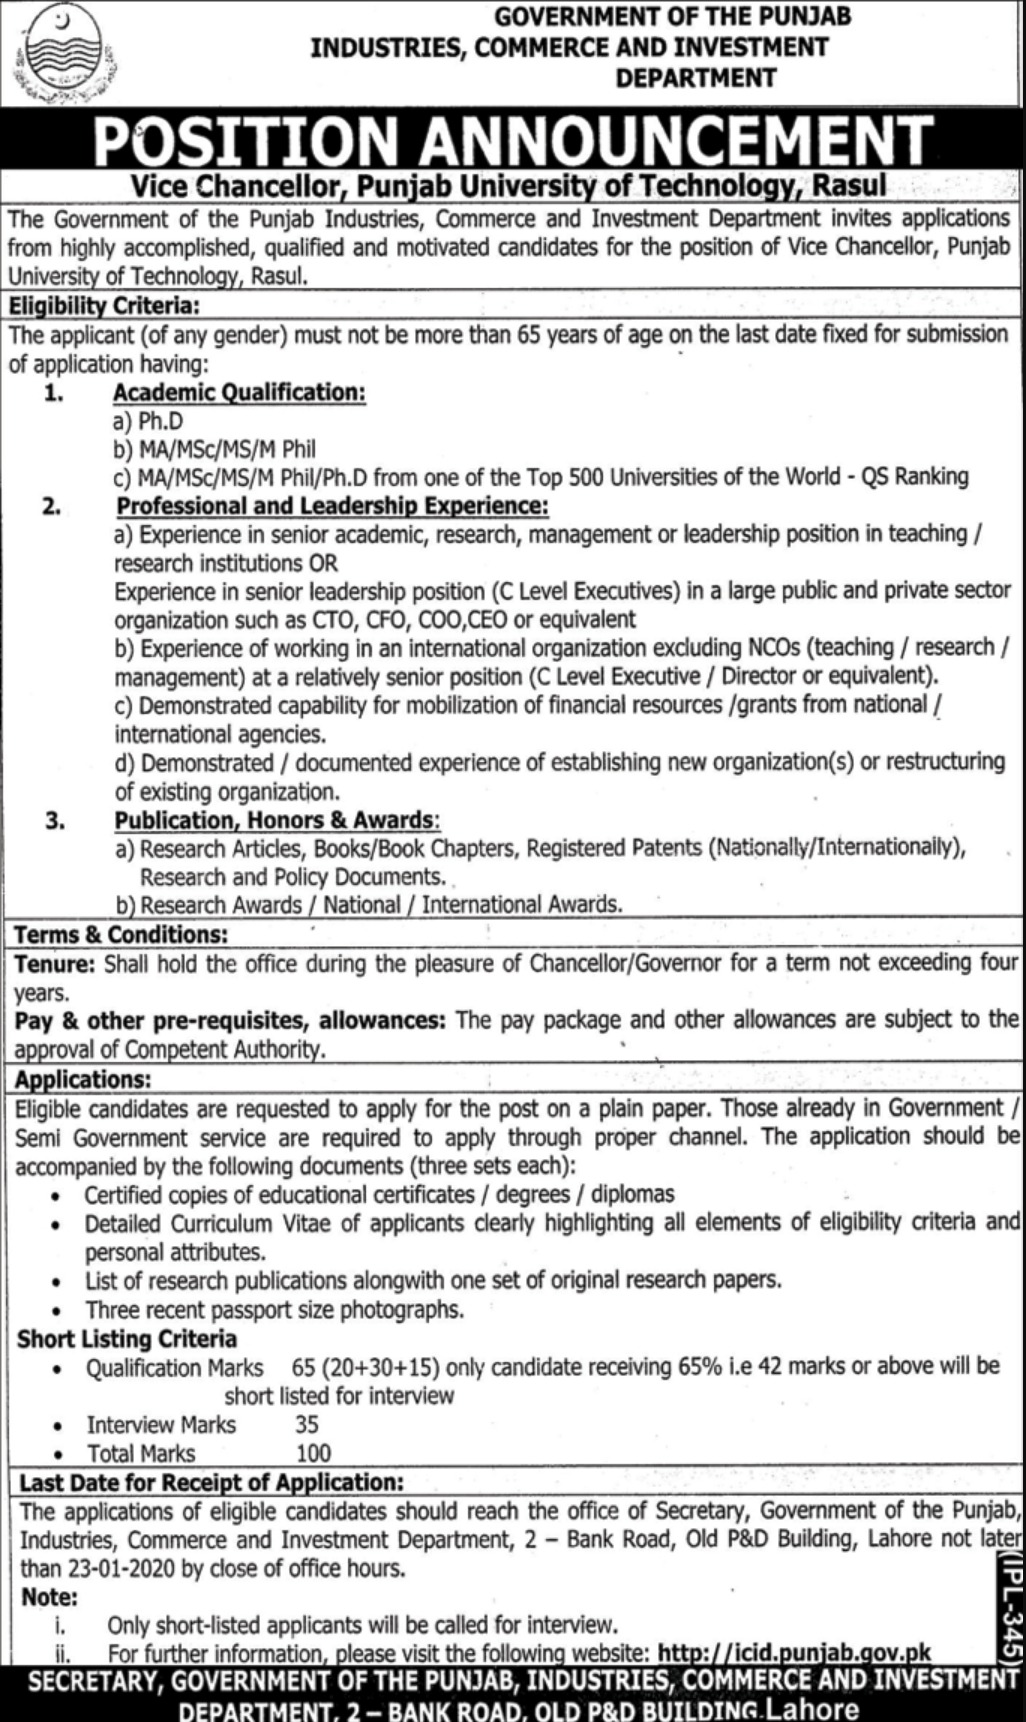 Industries Commerce & Investment Department Punjab Jobs 2020Industries Commerce & Investment Department Punjab Jobs 2020